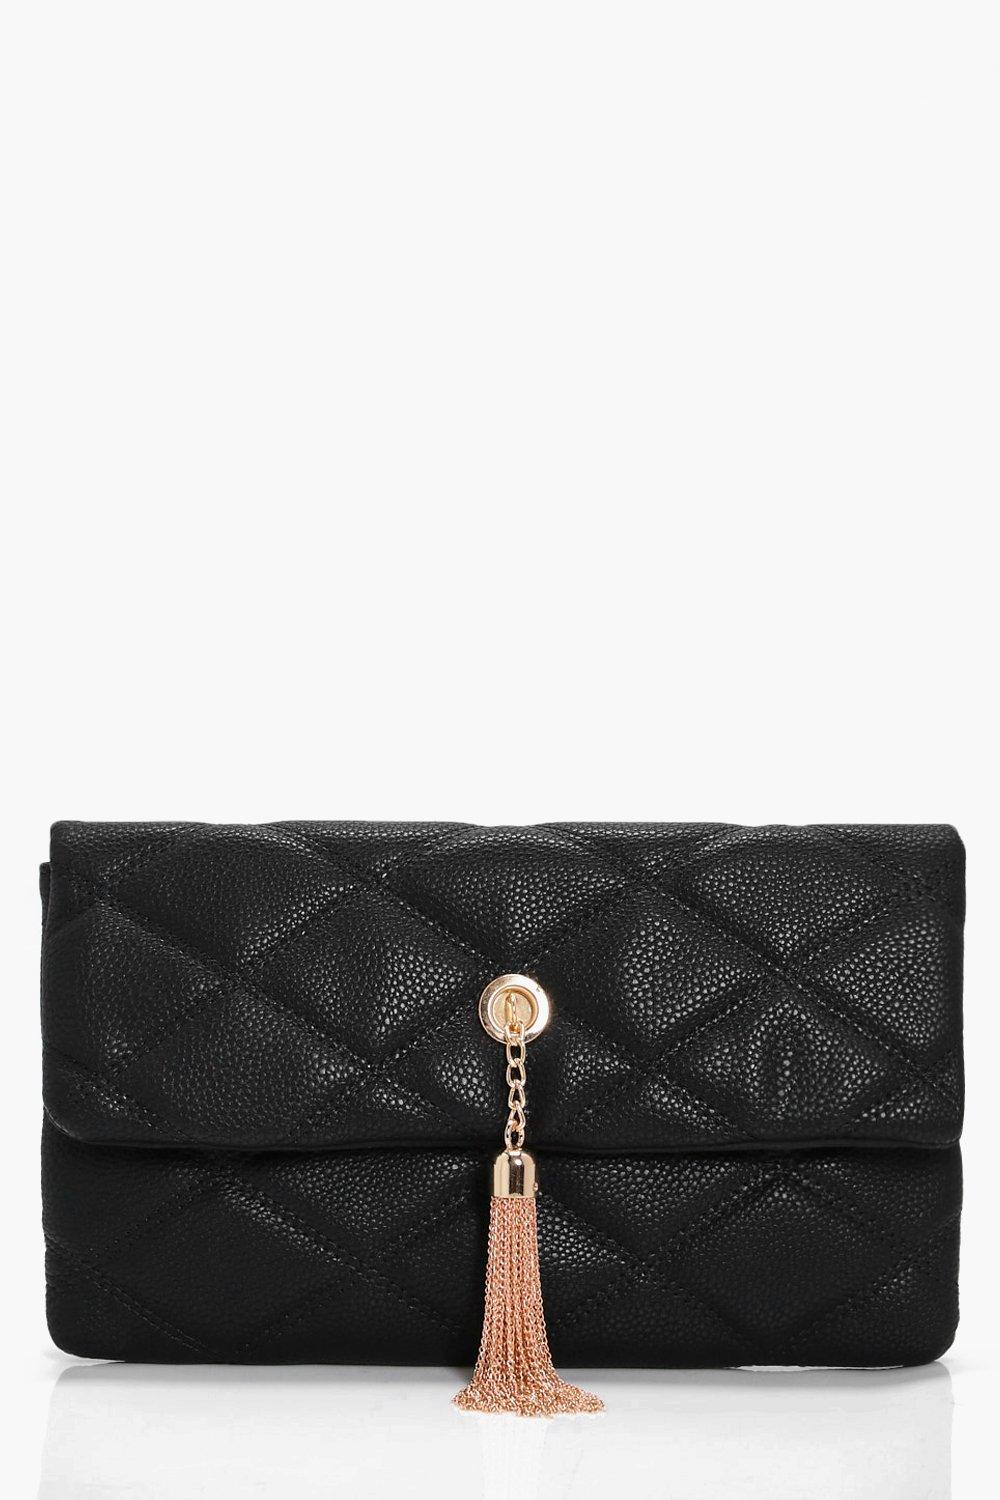 Quilted Metal Tassel Cross Body Bag - black - Laur